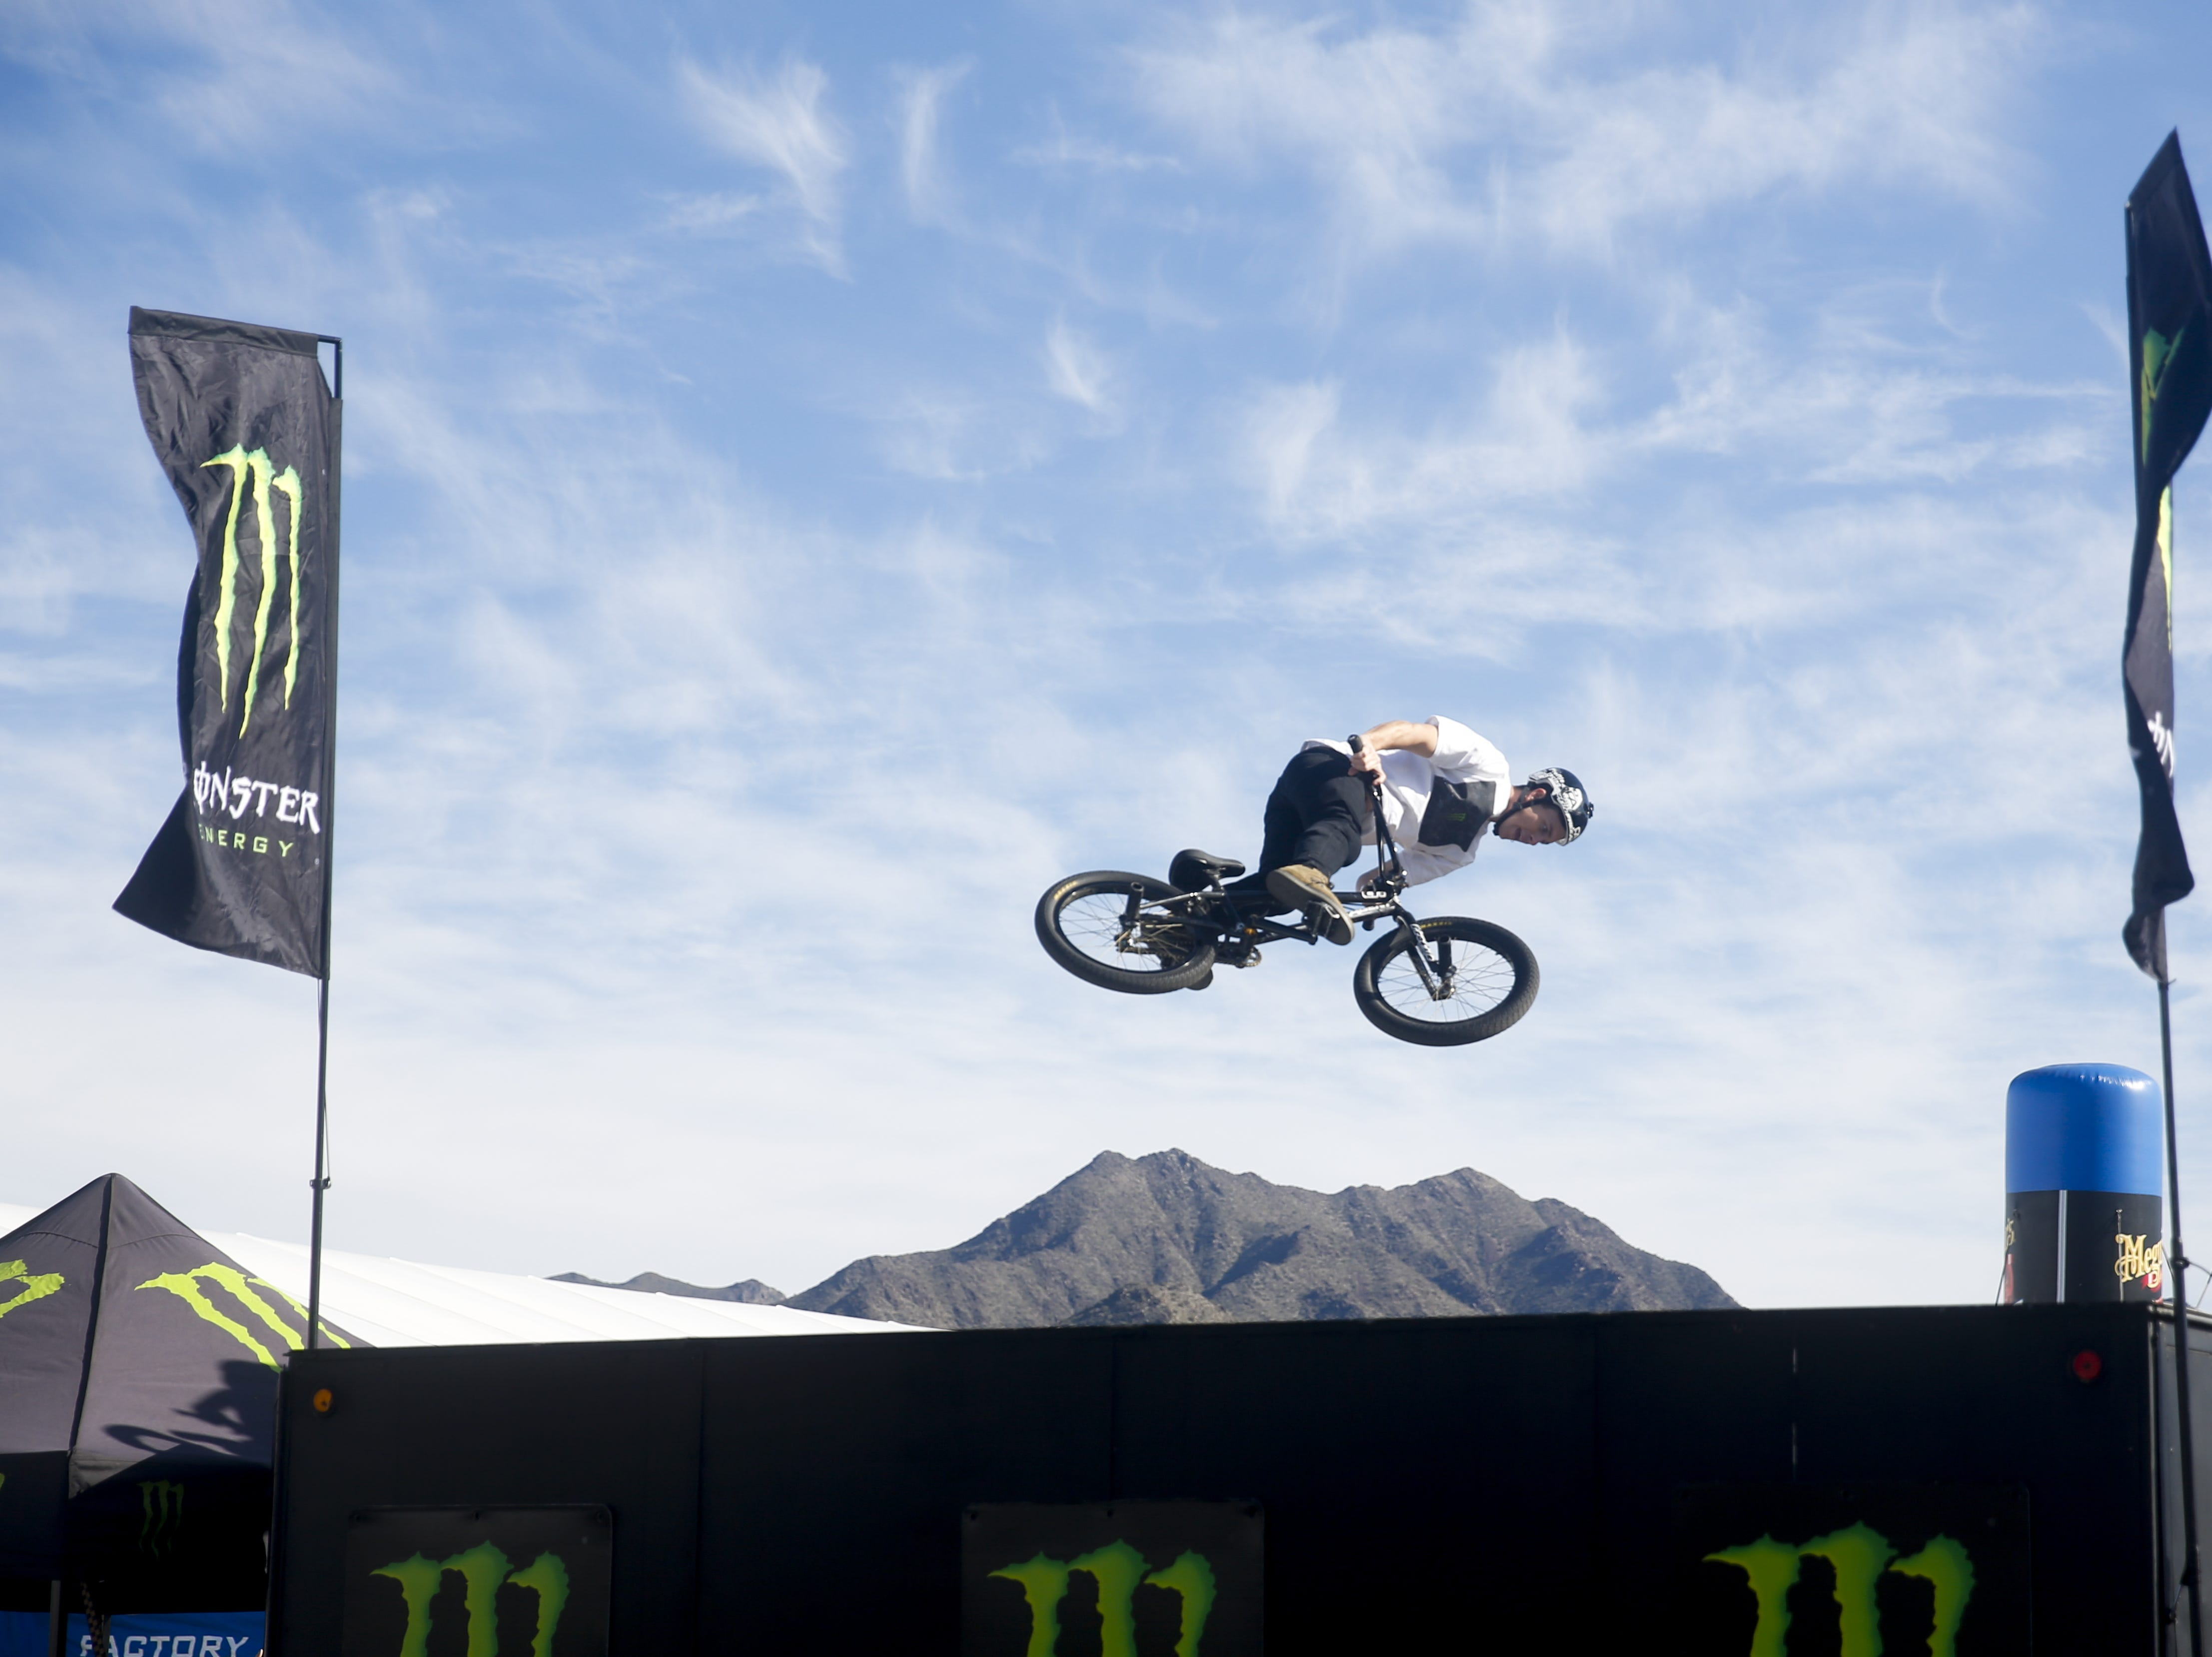 Jared Eberwein performs in the Monster Energy BMX show at the Barrett-Jackson Car Auction on Jan. 12, the first day of the event.